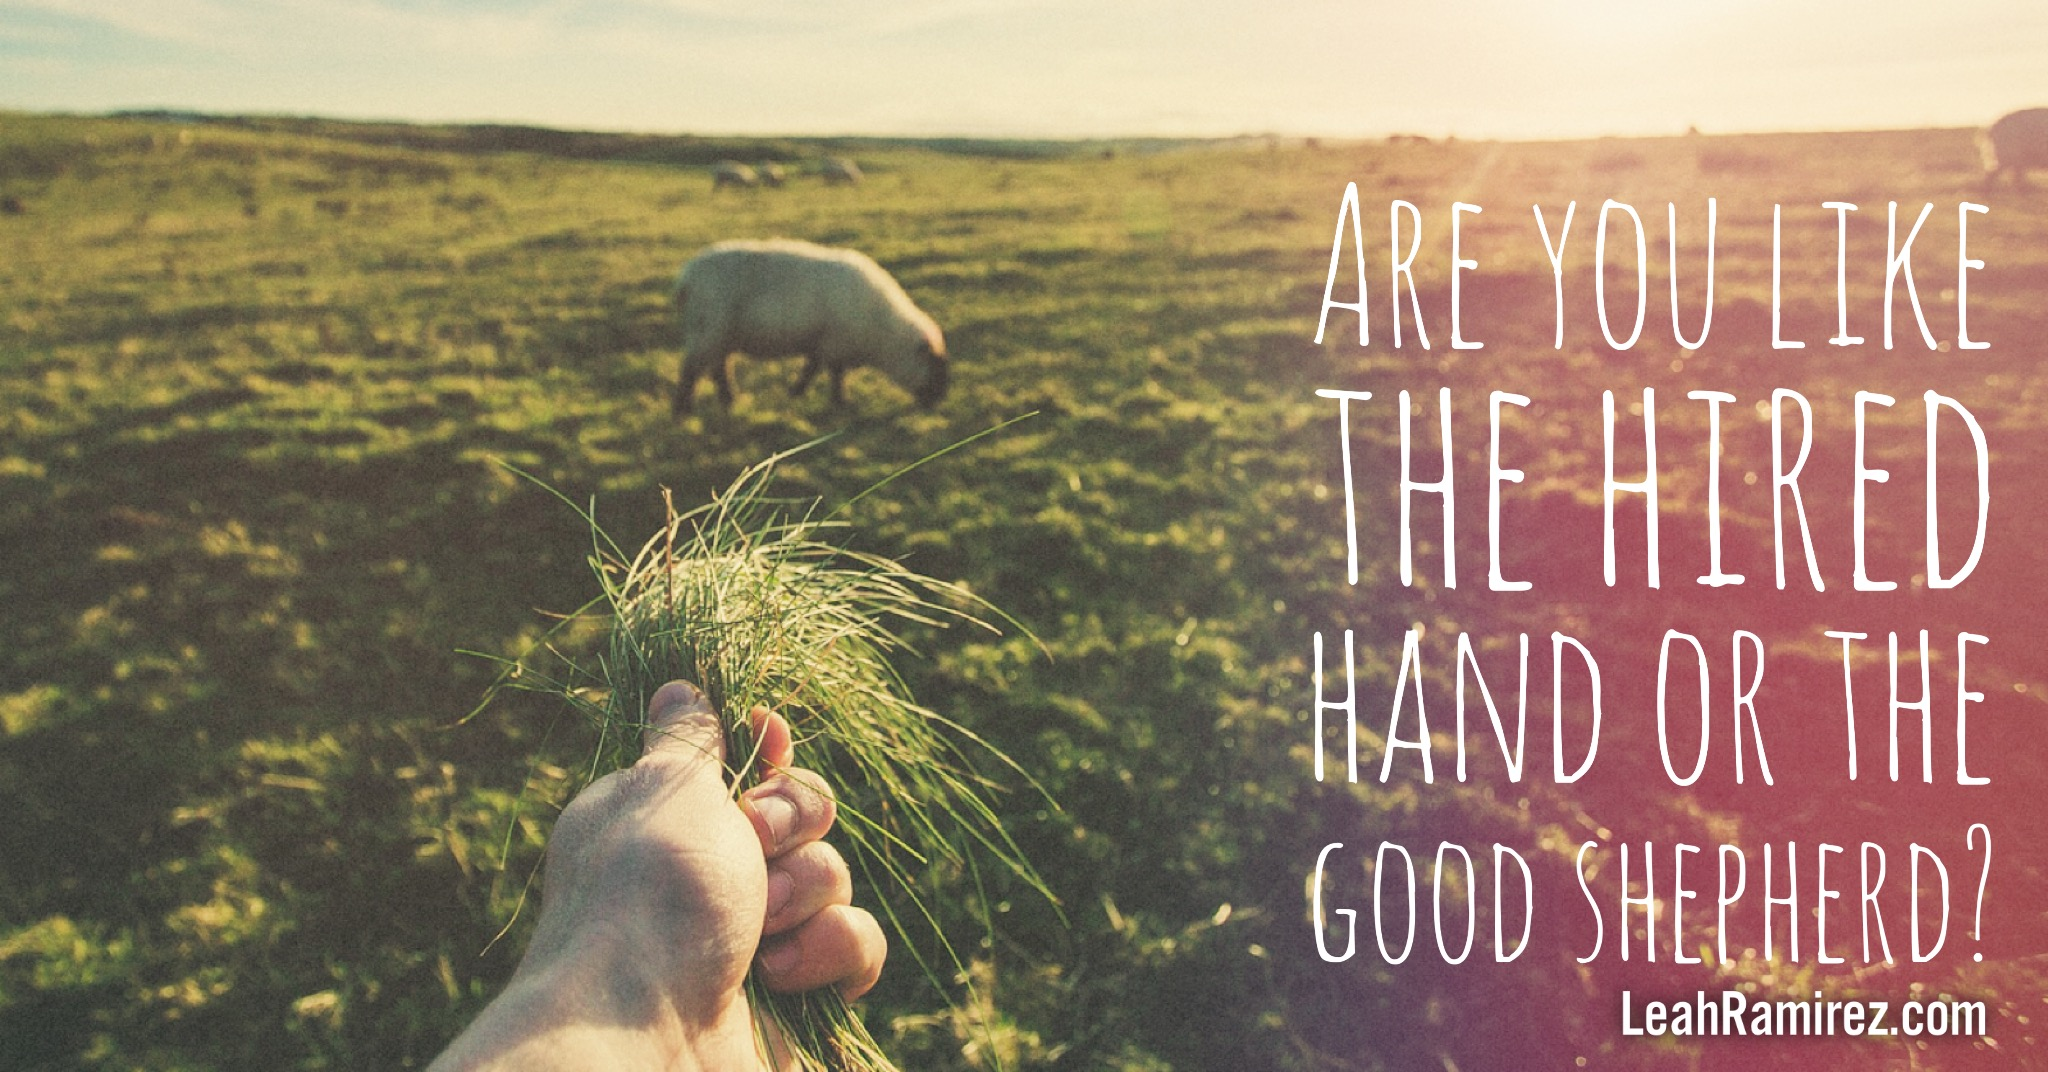 A Hired Hand or a Good Shepherd?